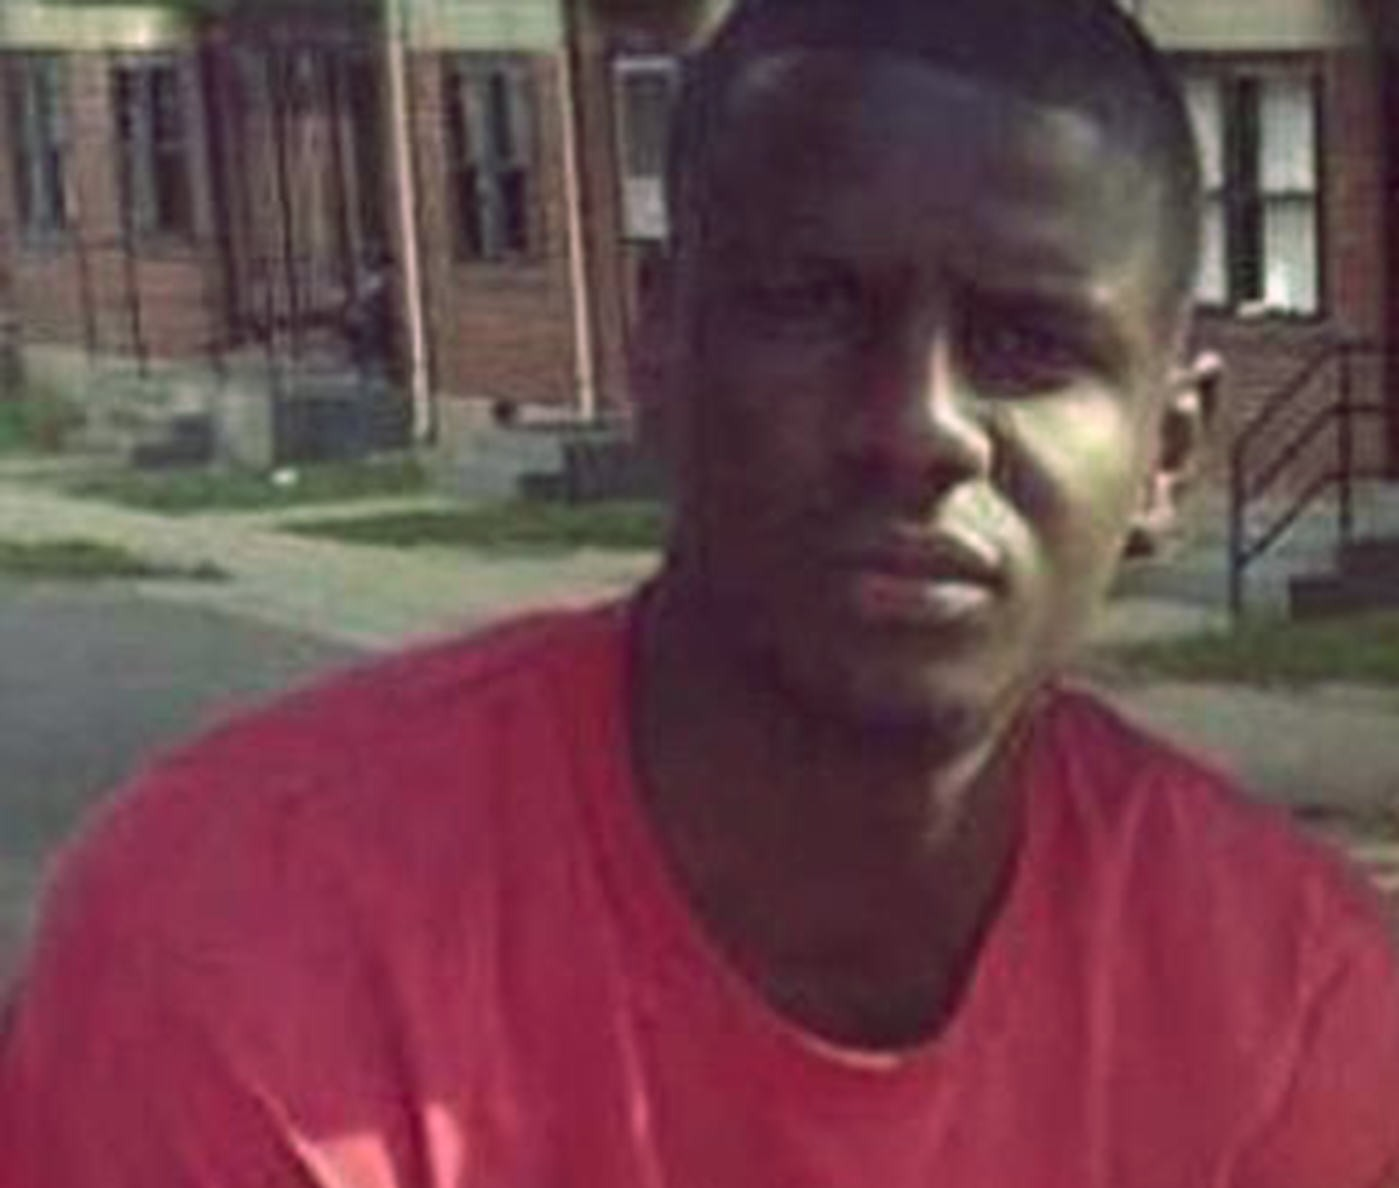 Six Officers Indicted In Death Of Freddie Gray 150420 freddie gray arp 1119a 329b7d001c7992aa77e88468304cdc8a e1432299527862